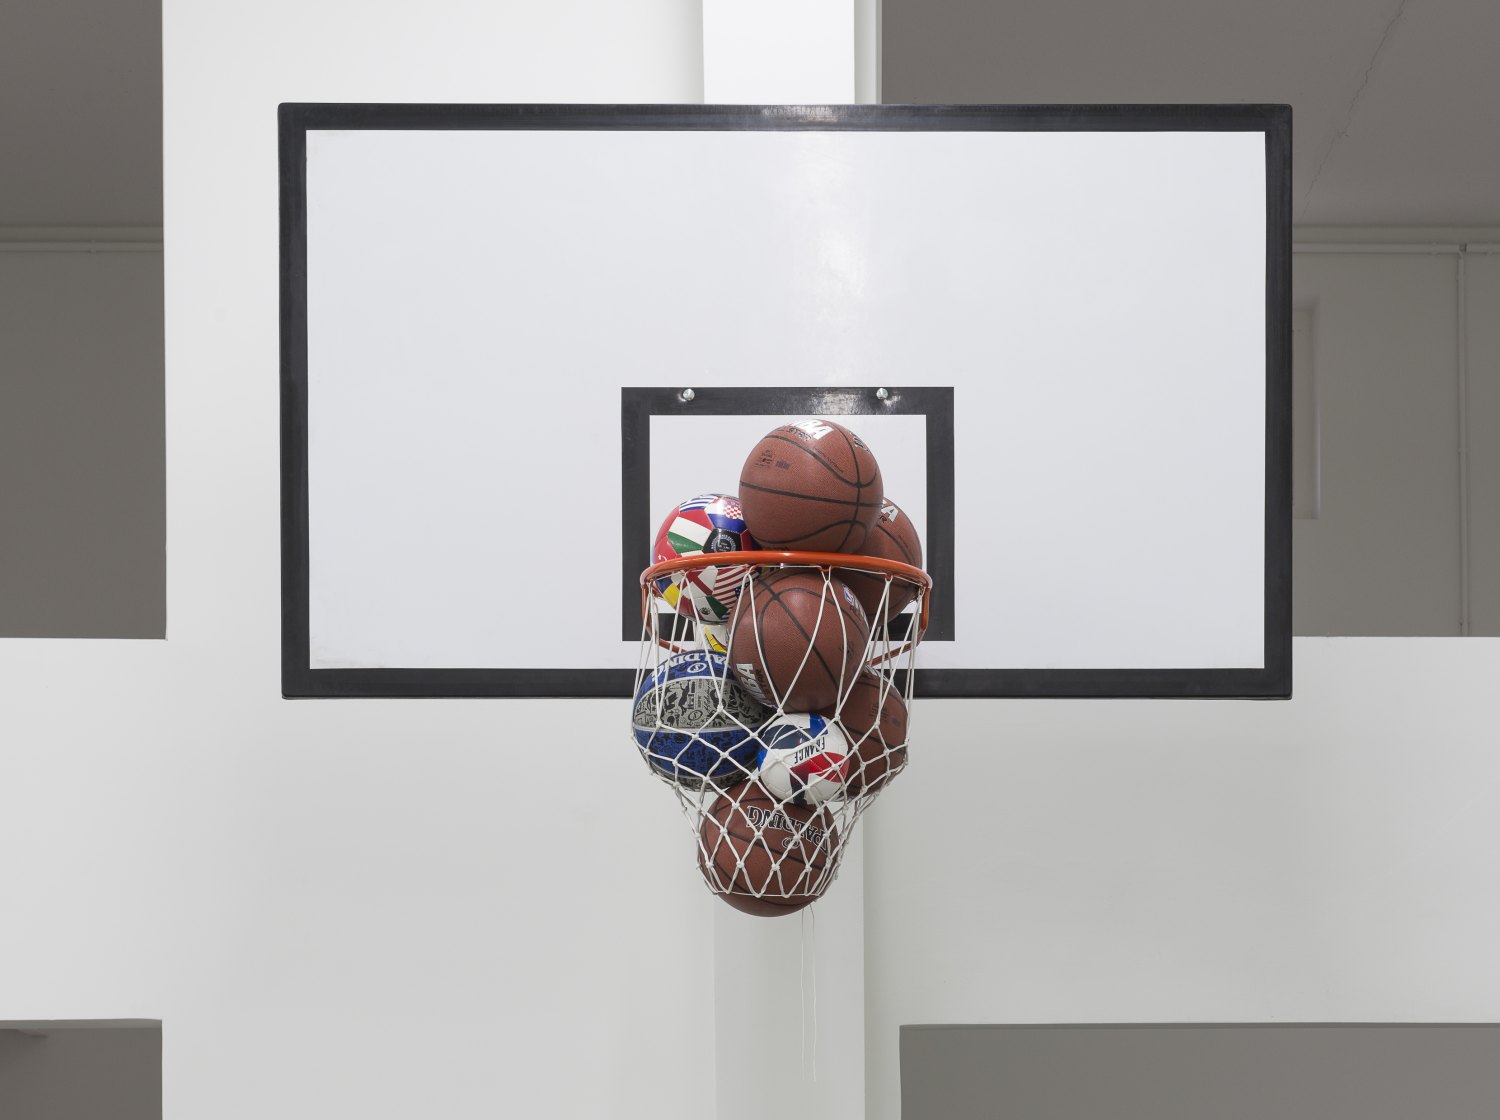 Claire Fontaine Caught, 2016 Basketball backboard, support, basketball hoop, net and various balls, 140 x 180 x 110 cm